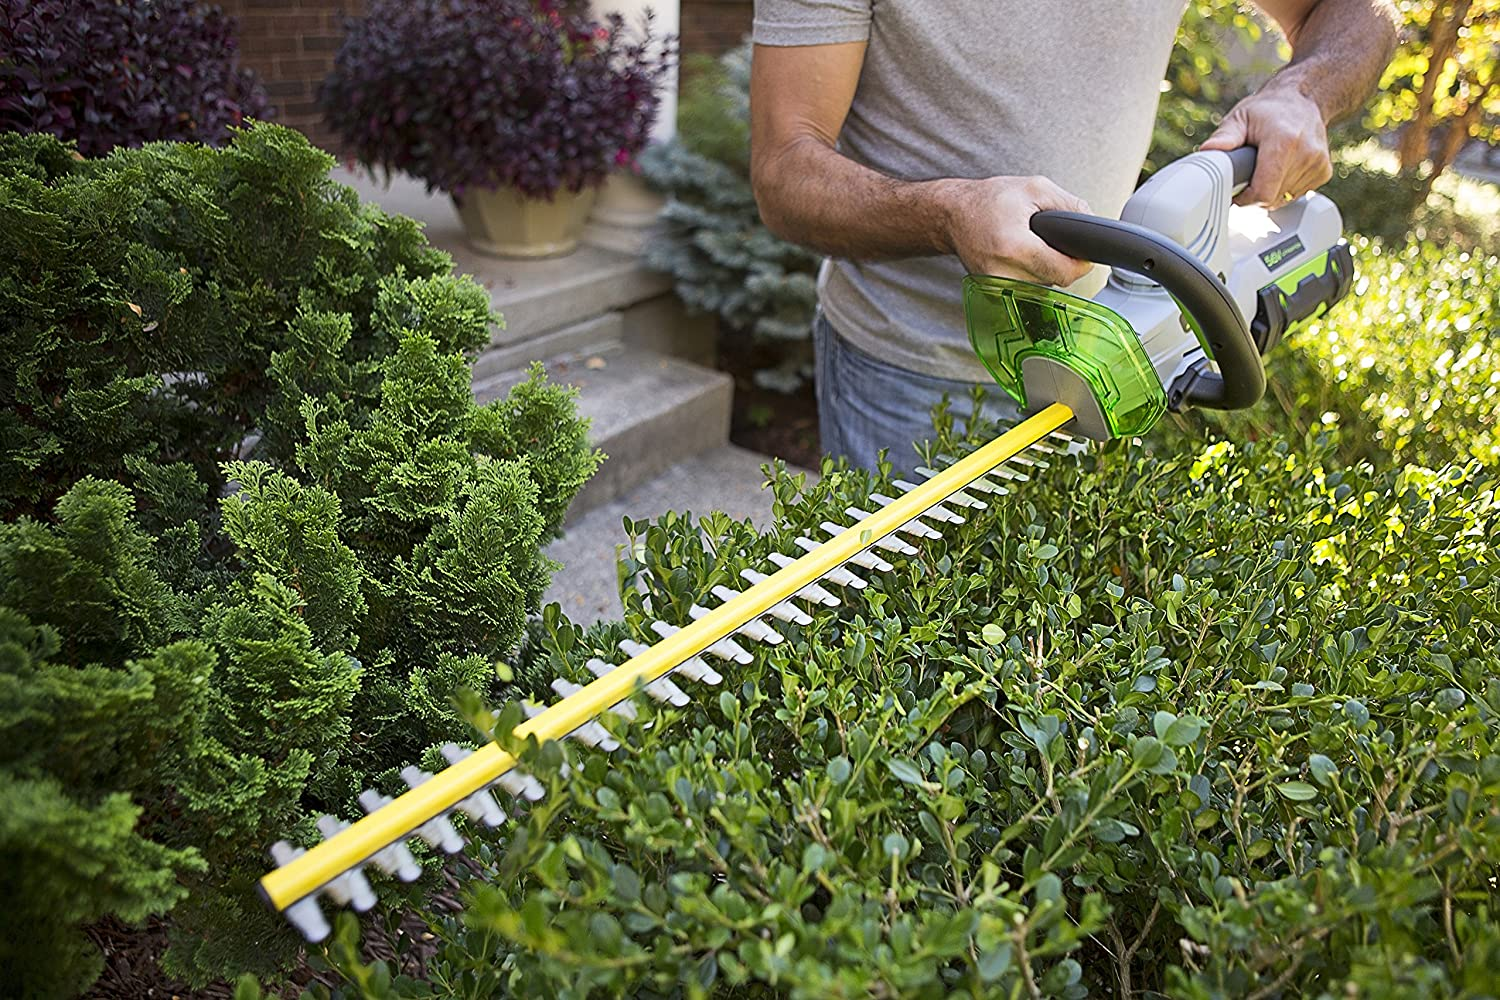 EGO Power 24-Inch 56-Volt Lithium-ion Cordless Hedge Trimmer Battery and Charger Not Included